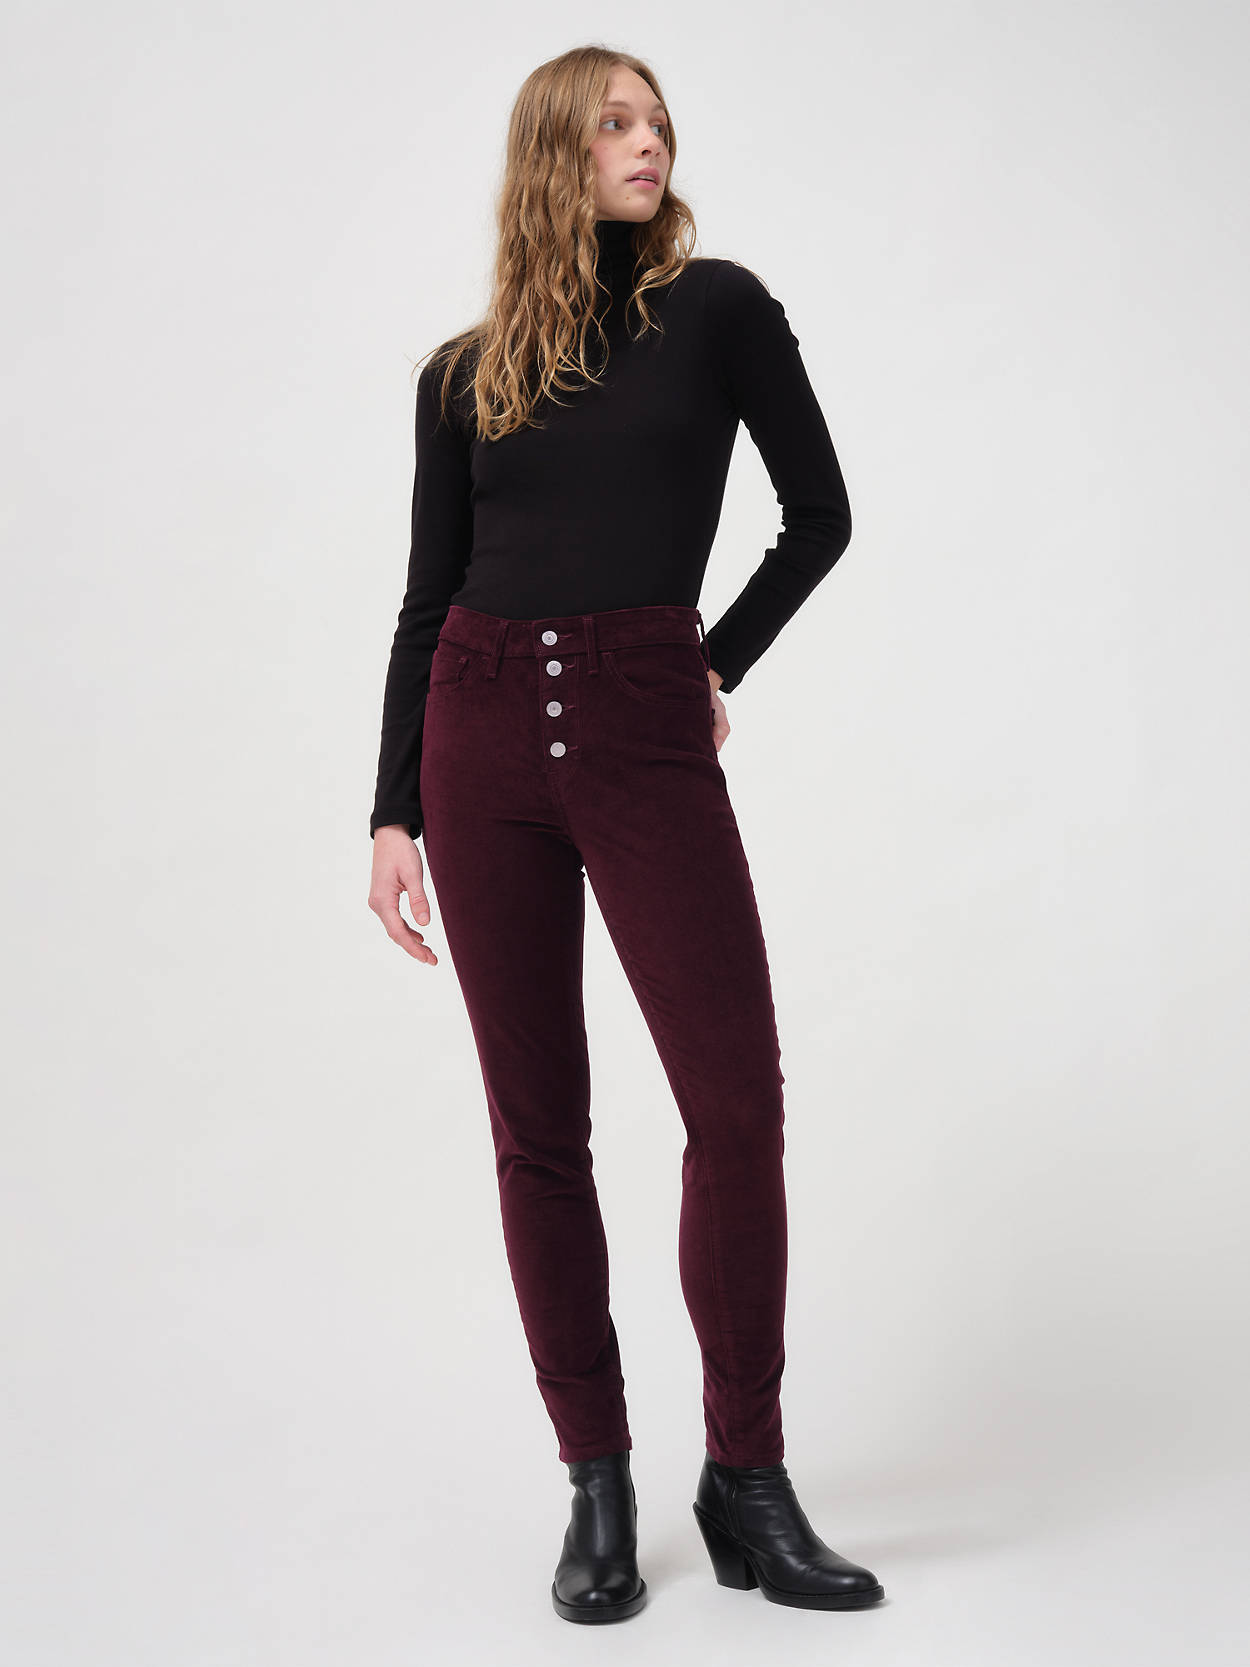 LEVI'S :  Women's 721 Corduroy High Rise Button Front Skinny Pants $17.49